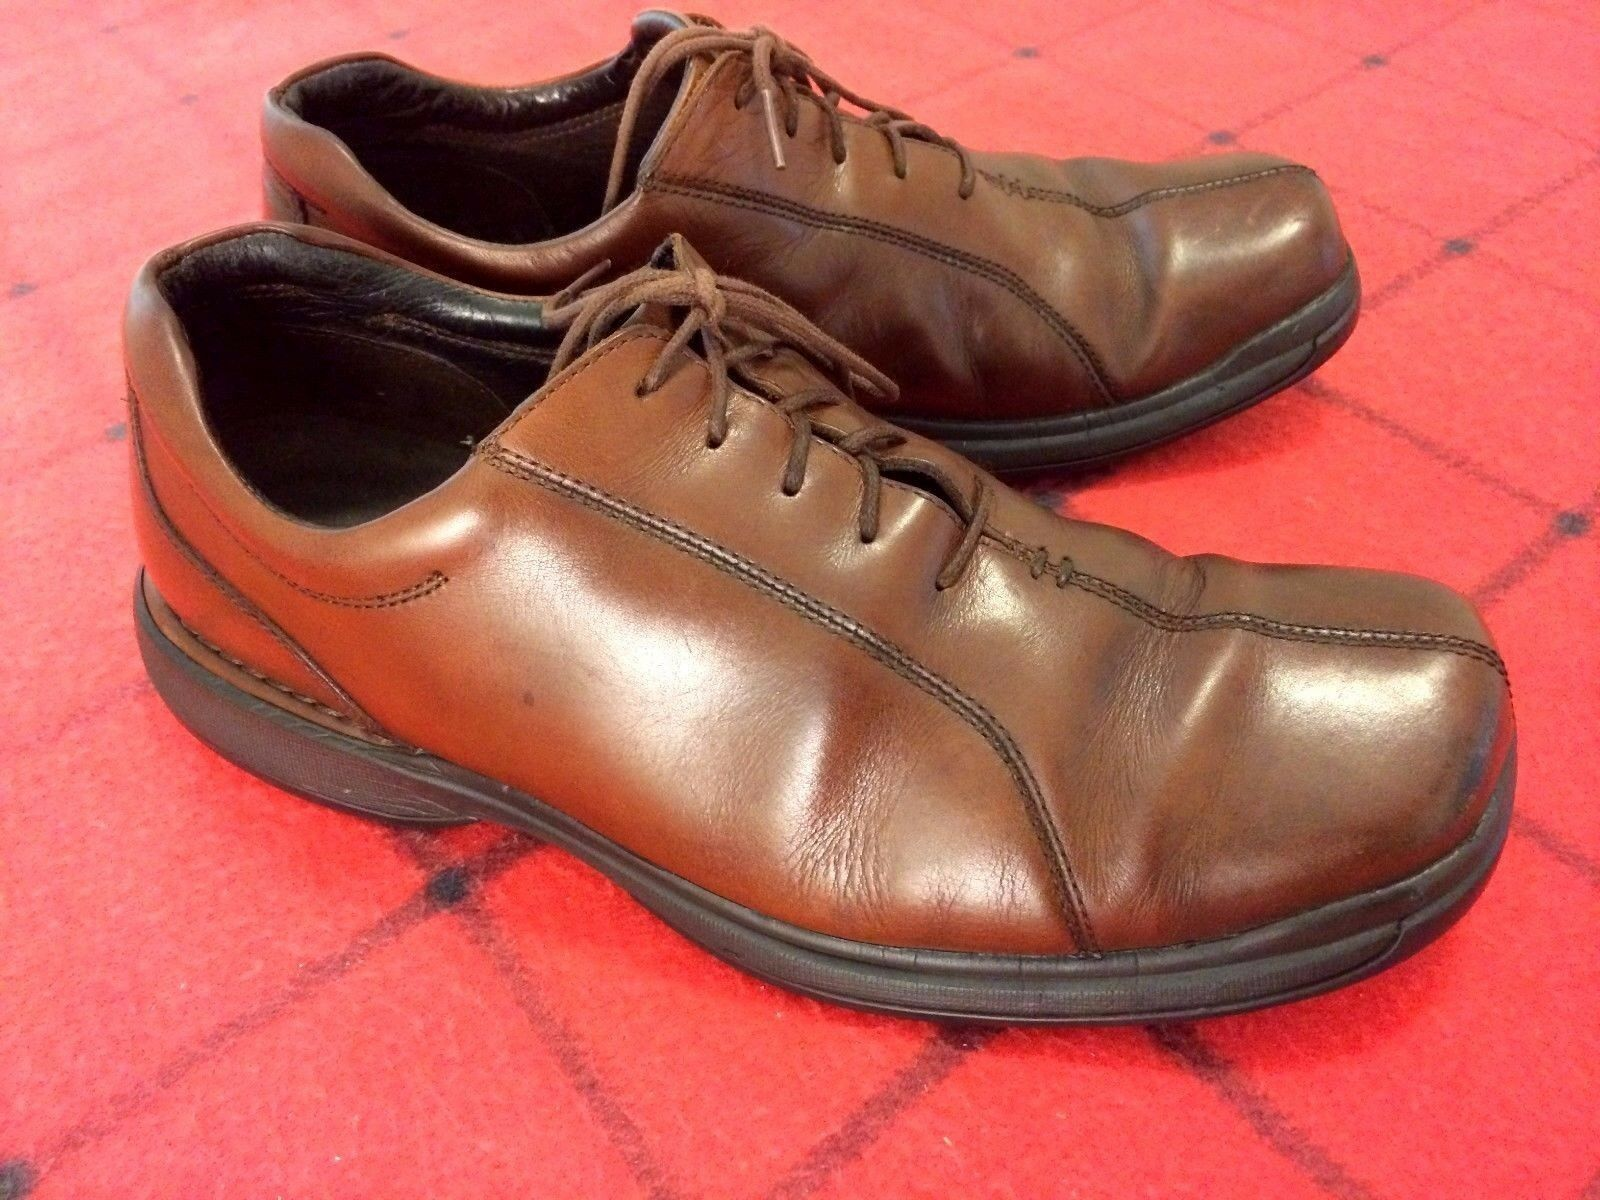 ROCKPORT KINETIC LEATHER AIR CIRCULATOR MEN SIZE 11.5 M BROWN LEATHER KINETIC UPPER DRESS SHOES 01a39f